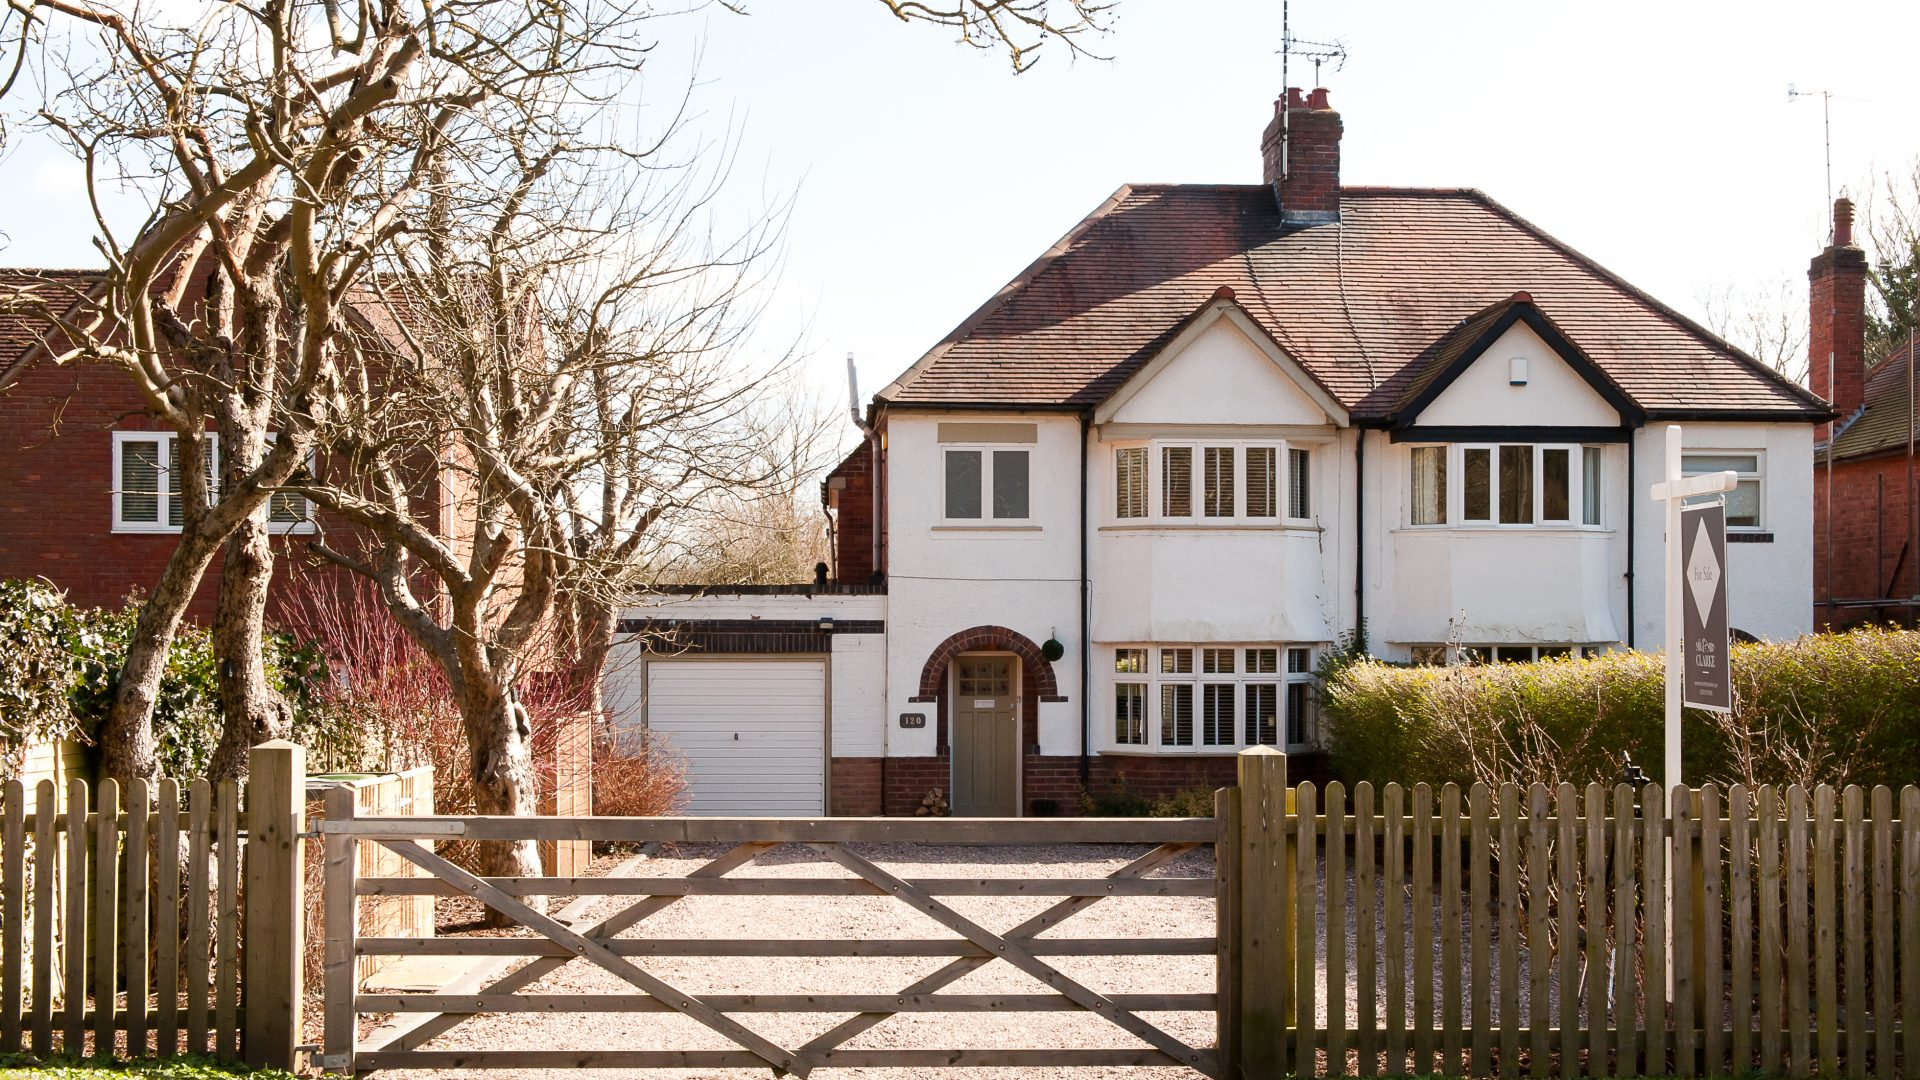 Station Lane, Lapworth for sale with Mr and Mrs Clarke estate agent